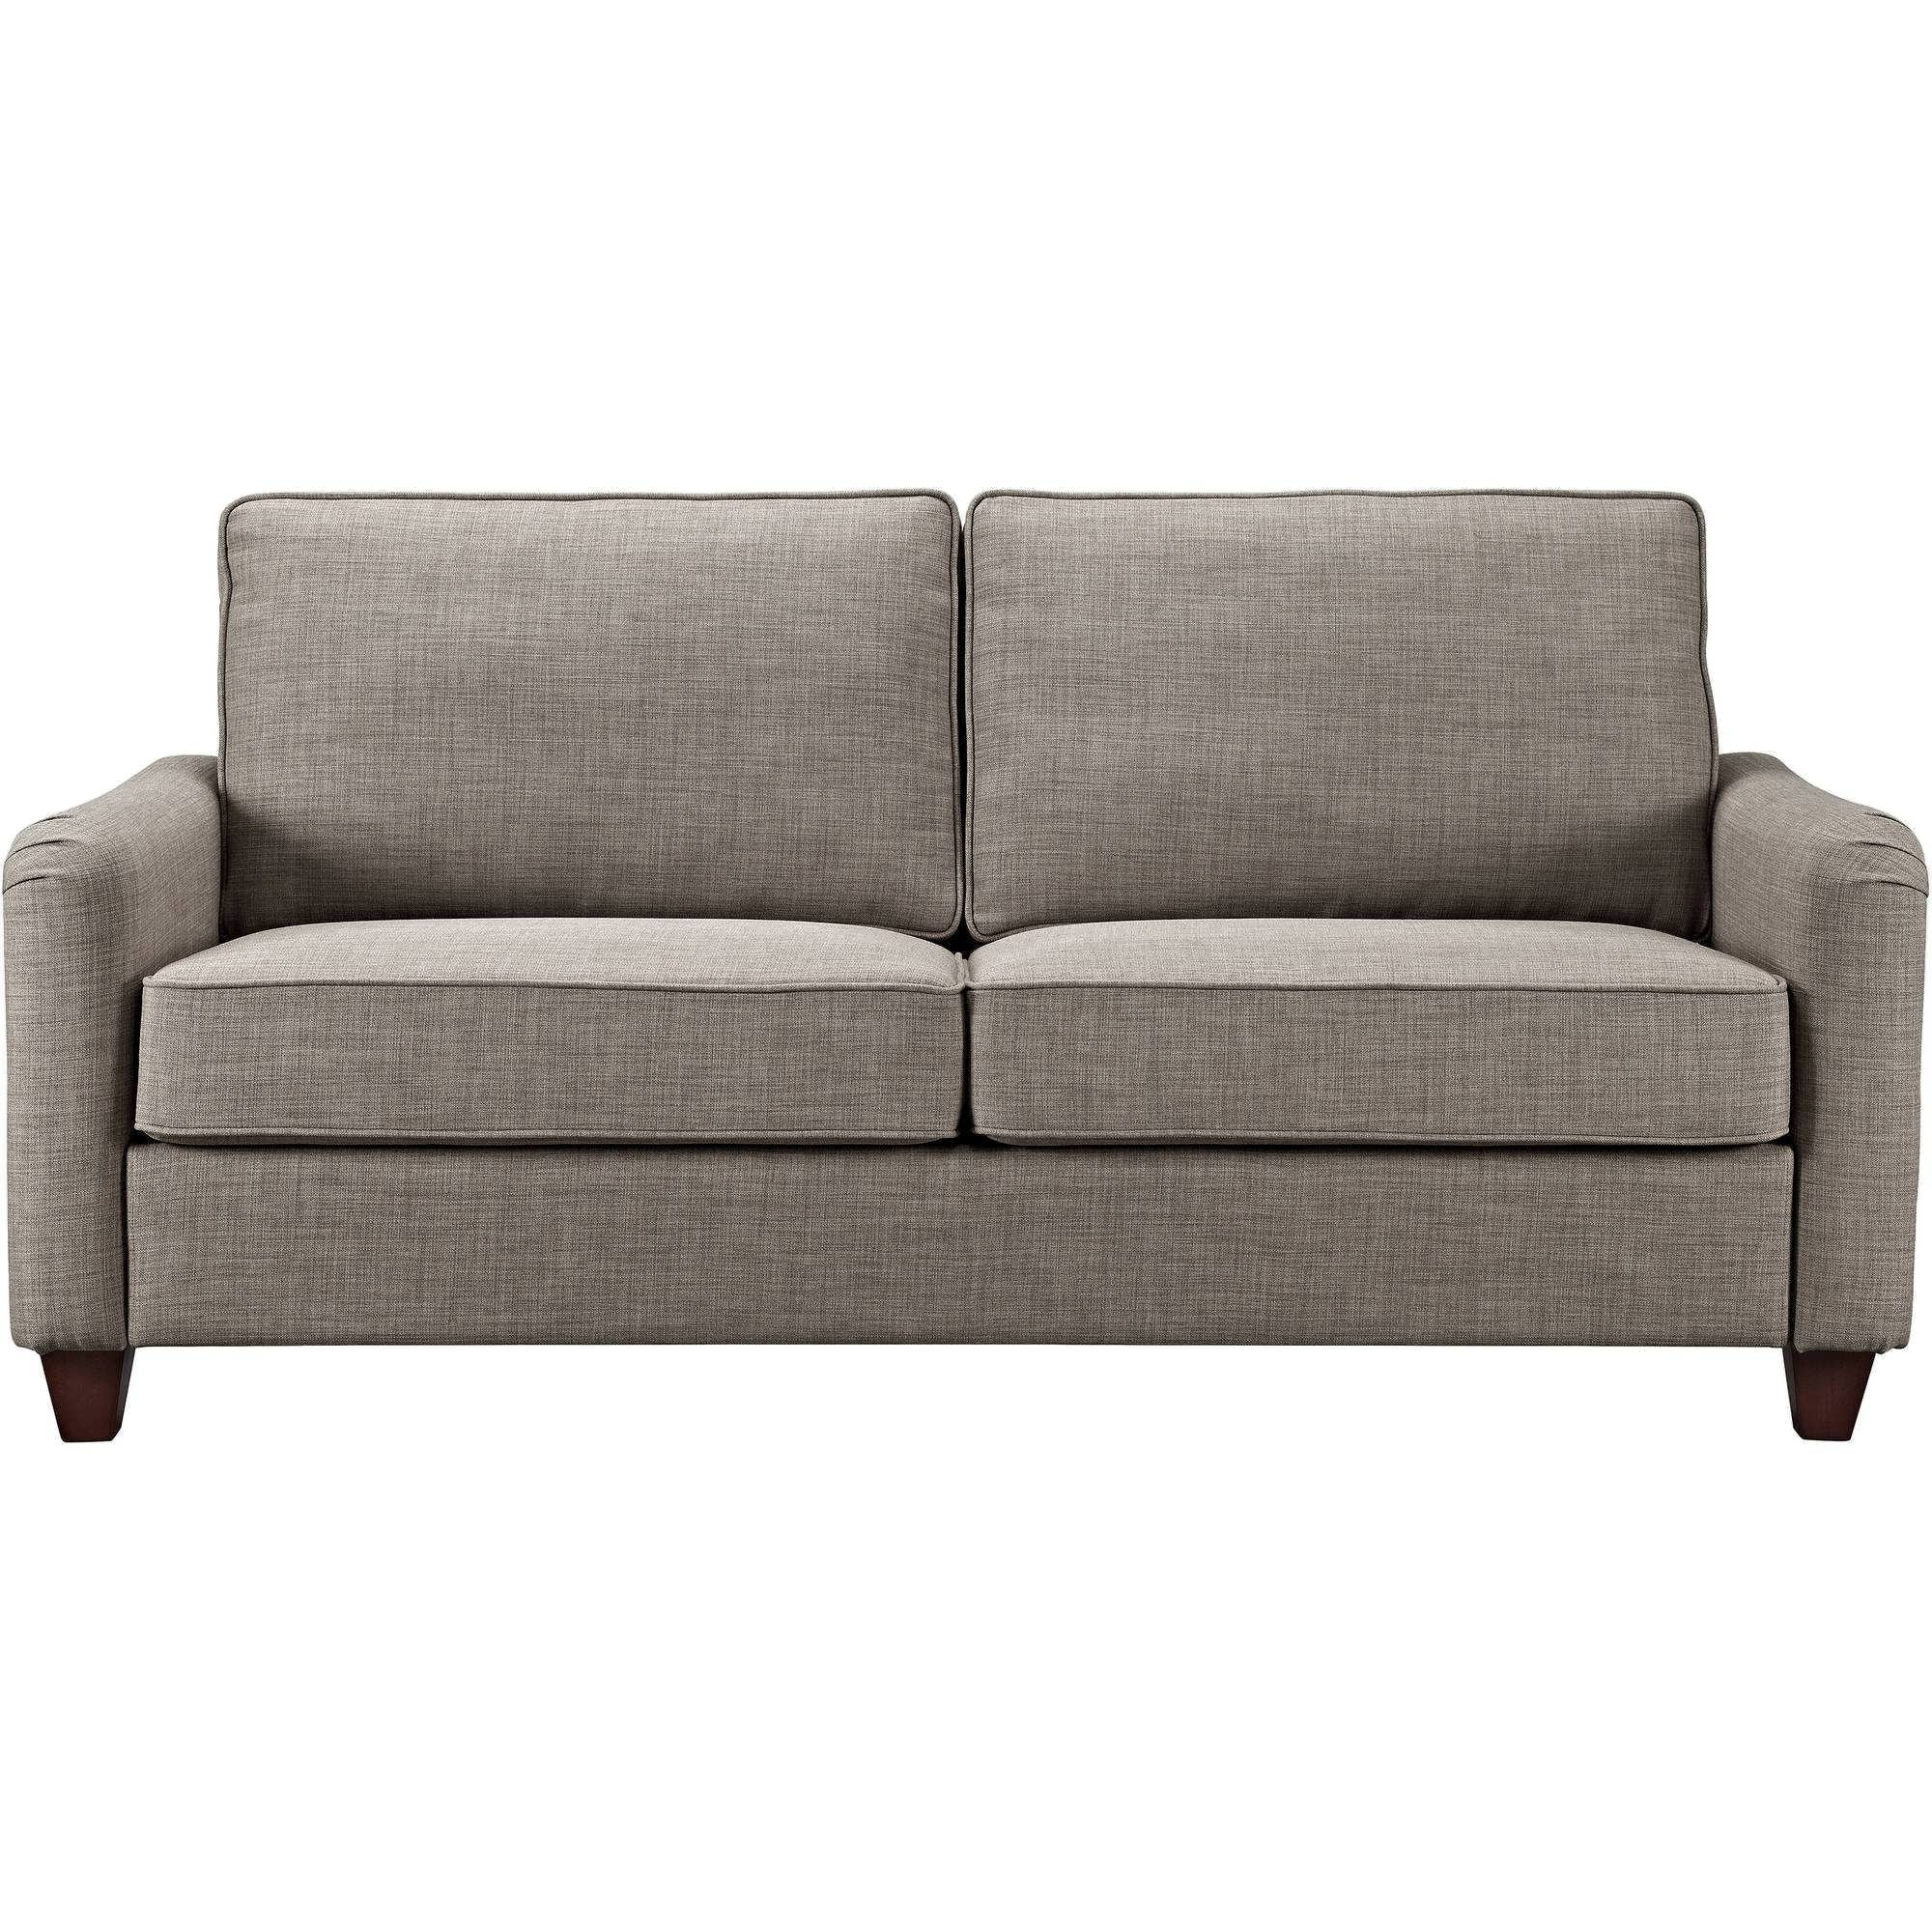 Preferred Sofa : Teal Couch Cheap Fabric Sofas Gray Chaise Lounge Chaise Inside Cheap Chaise Lounges (View 15 of 15)